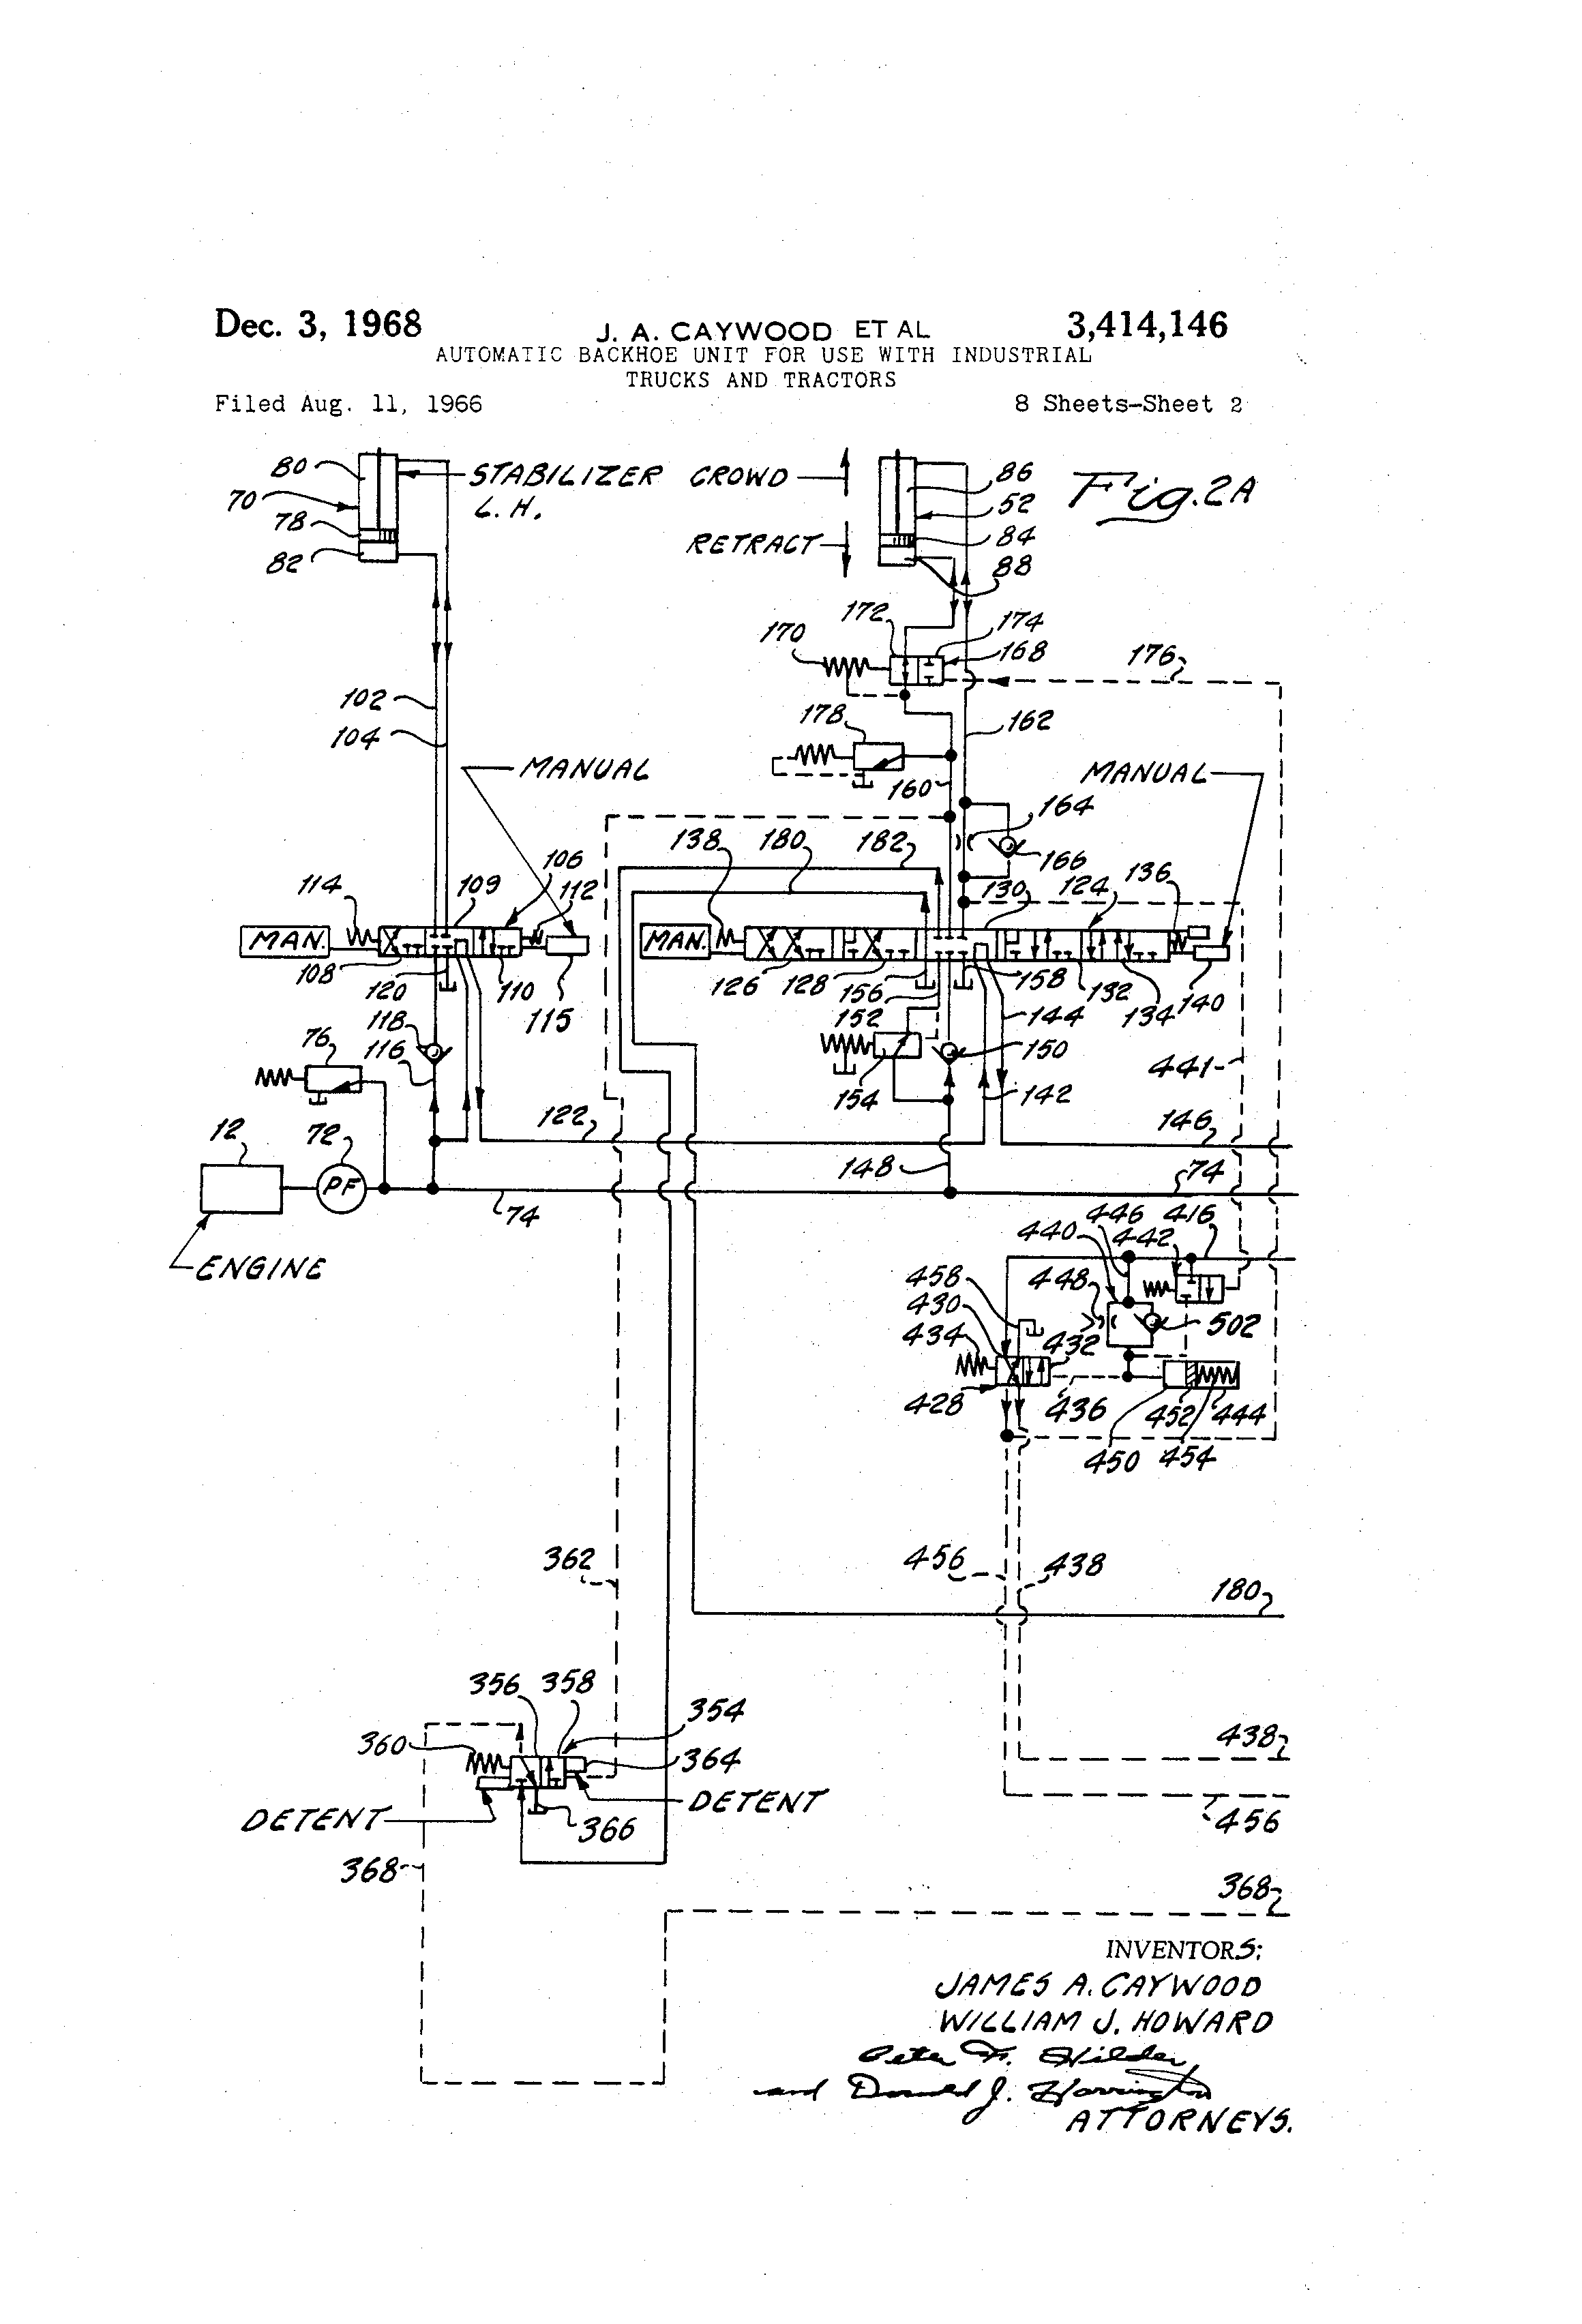 580se case backhoe wiring diagram engine wiring diagram wiring diagram